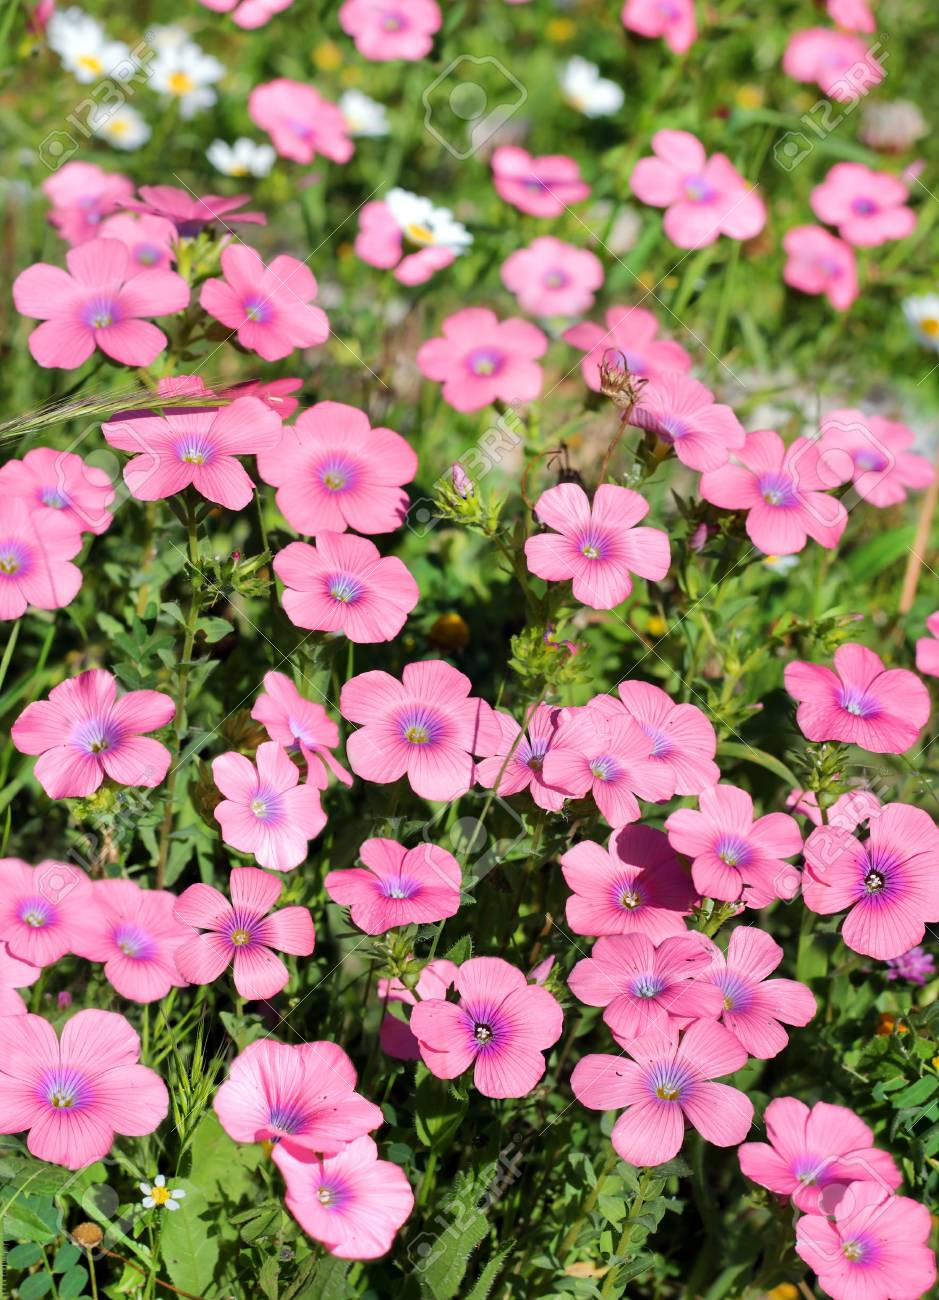 bright pink flowers of the field, the first spring bloom, as floral background Stock Photo - 18302909